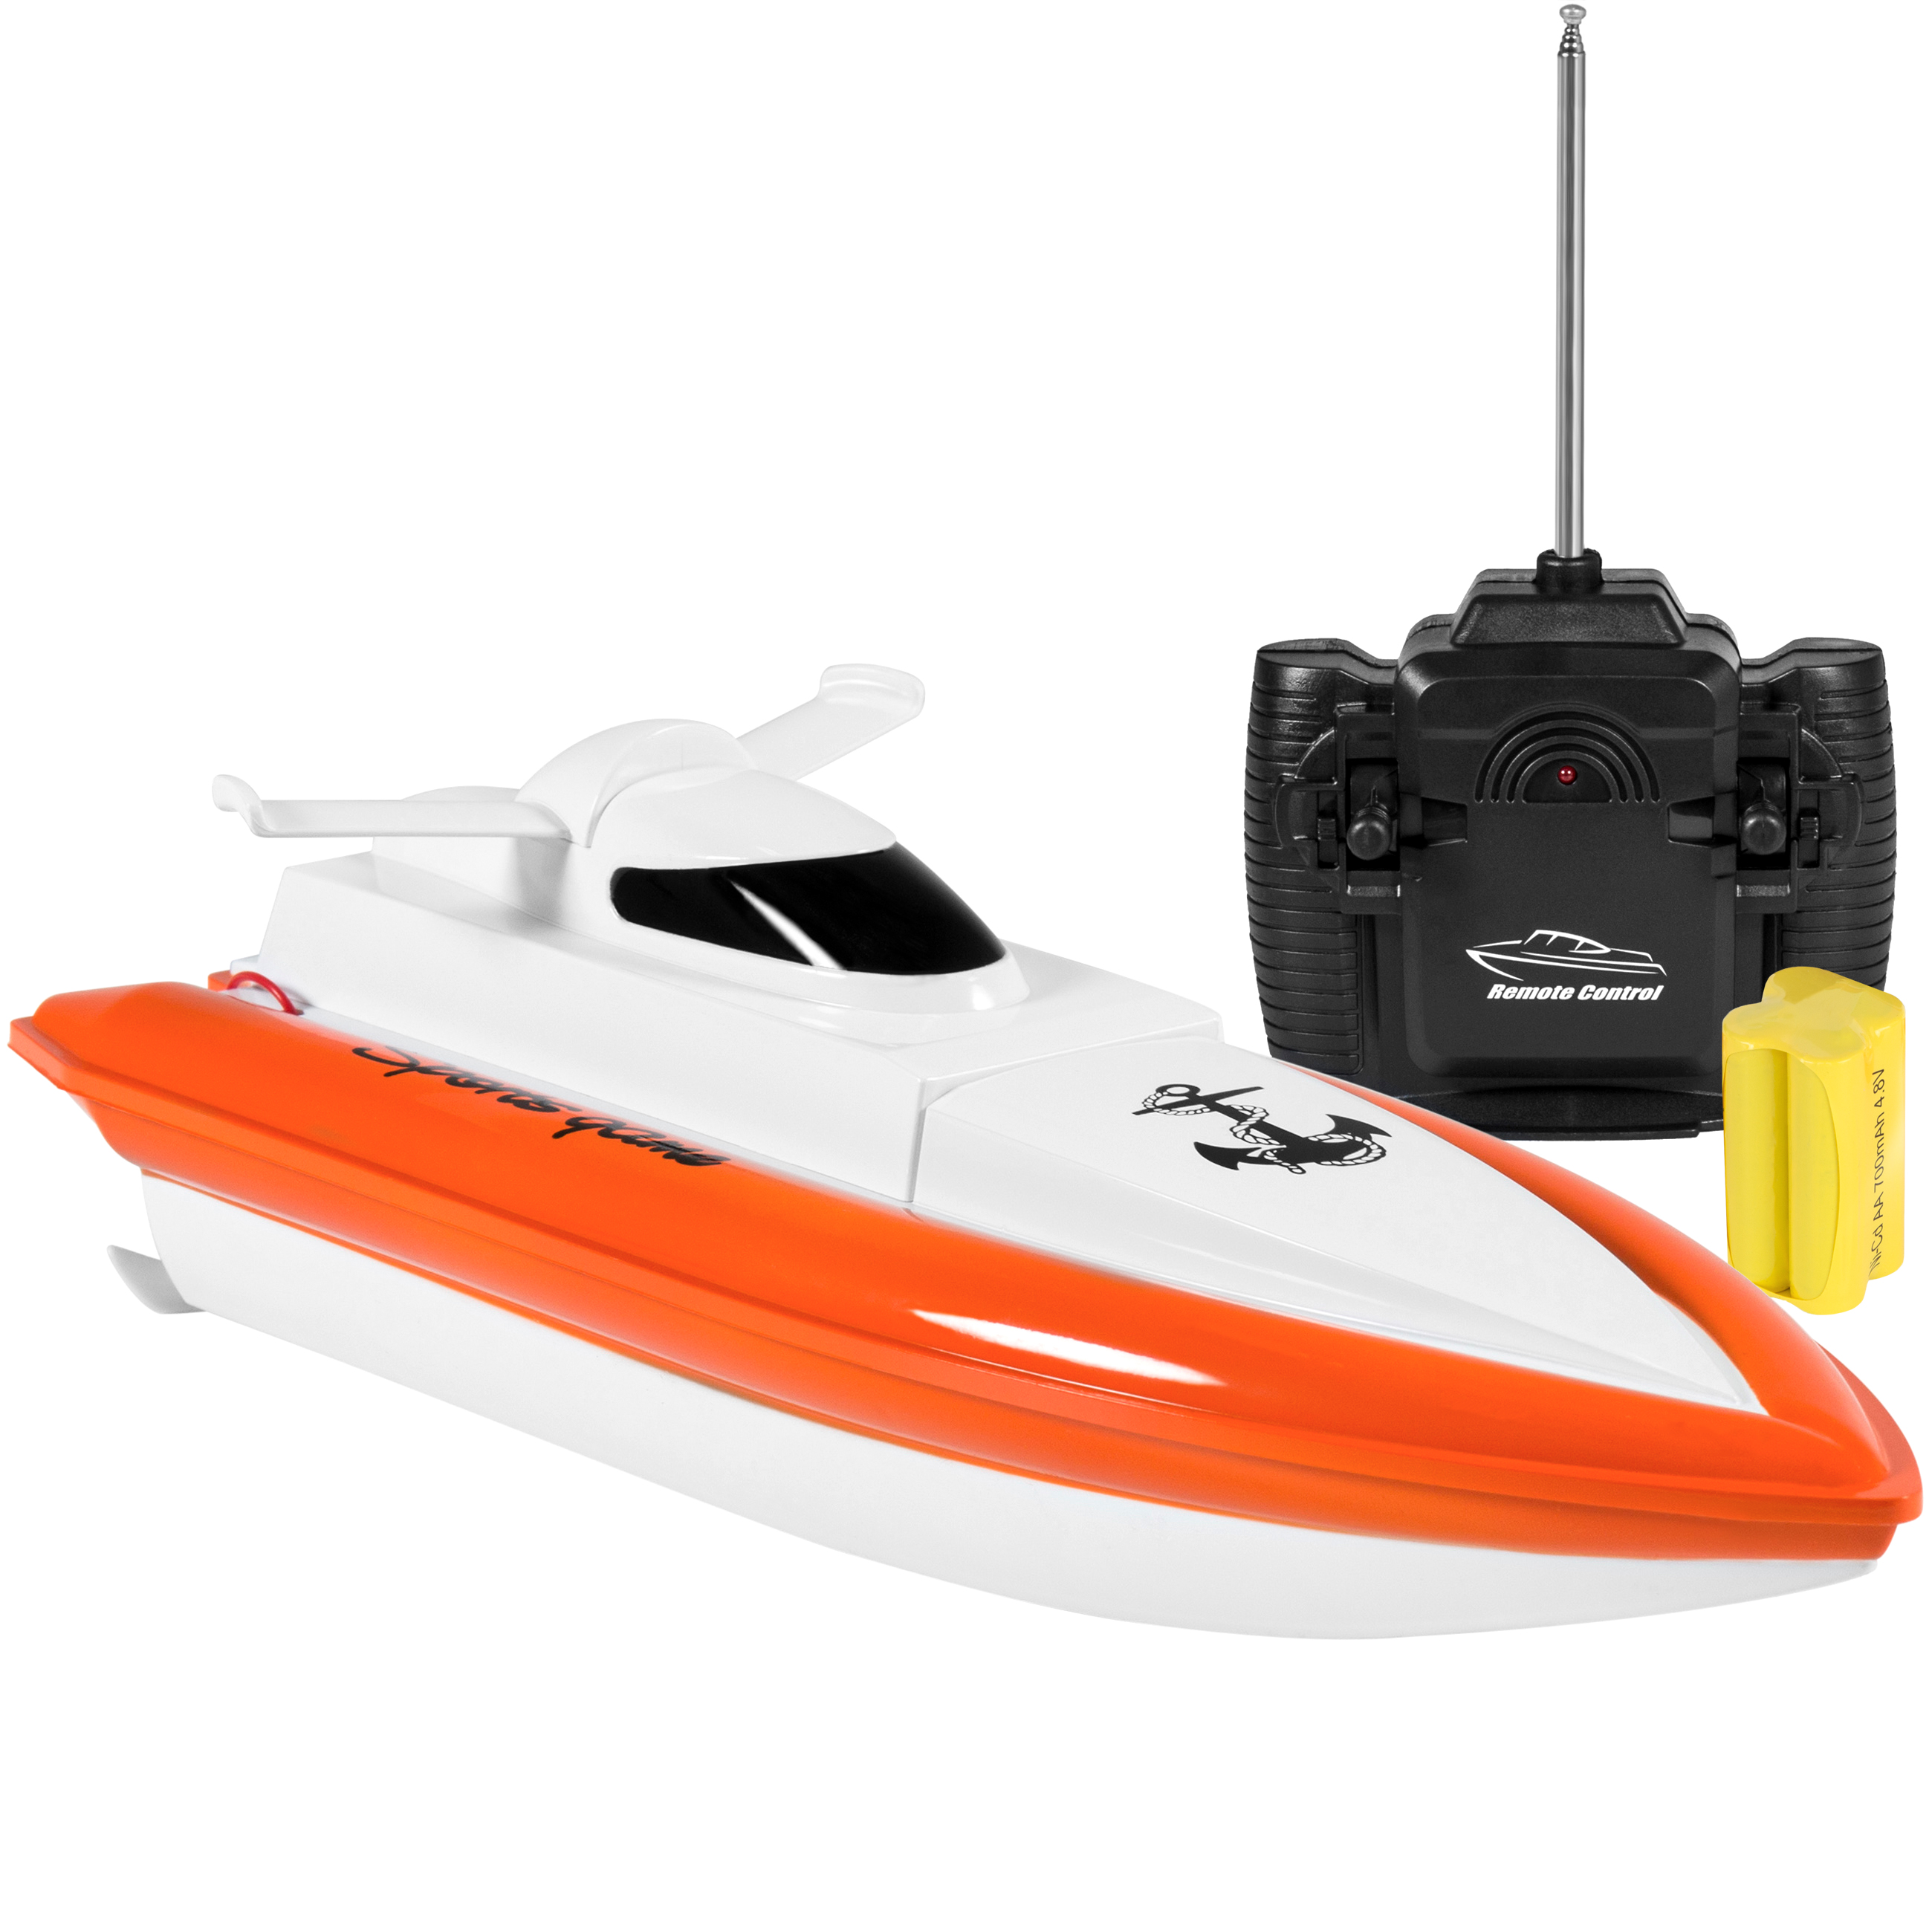 Best Choice Products 27MHz High-Speed Battery Powered Remote Control Electric Racing Water RC Boat Toy w/ UL Charger, 2 Motors - White/Orange